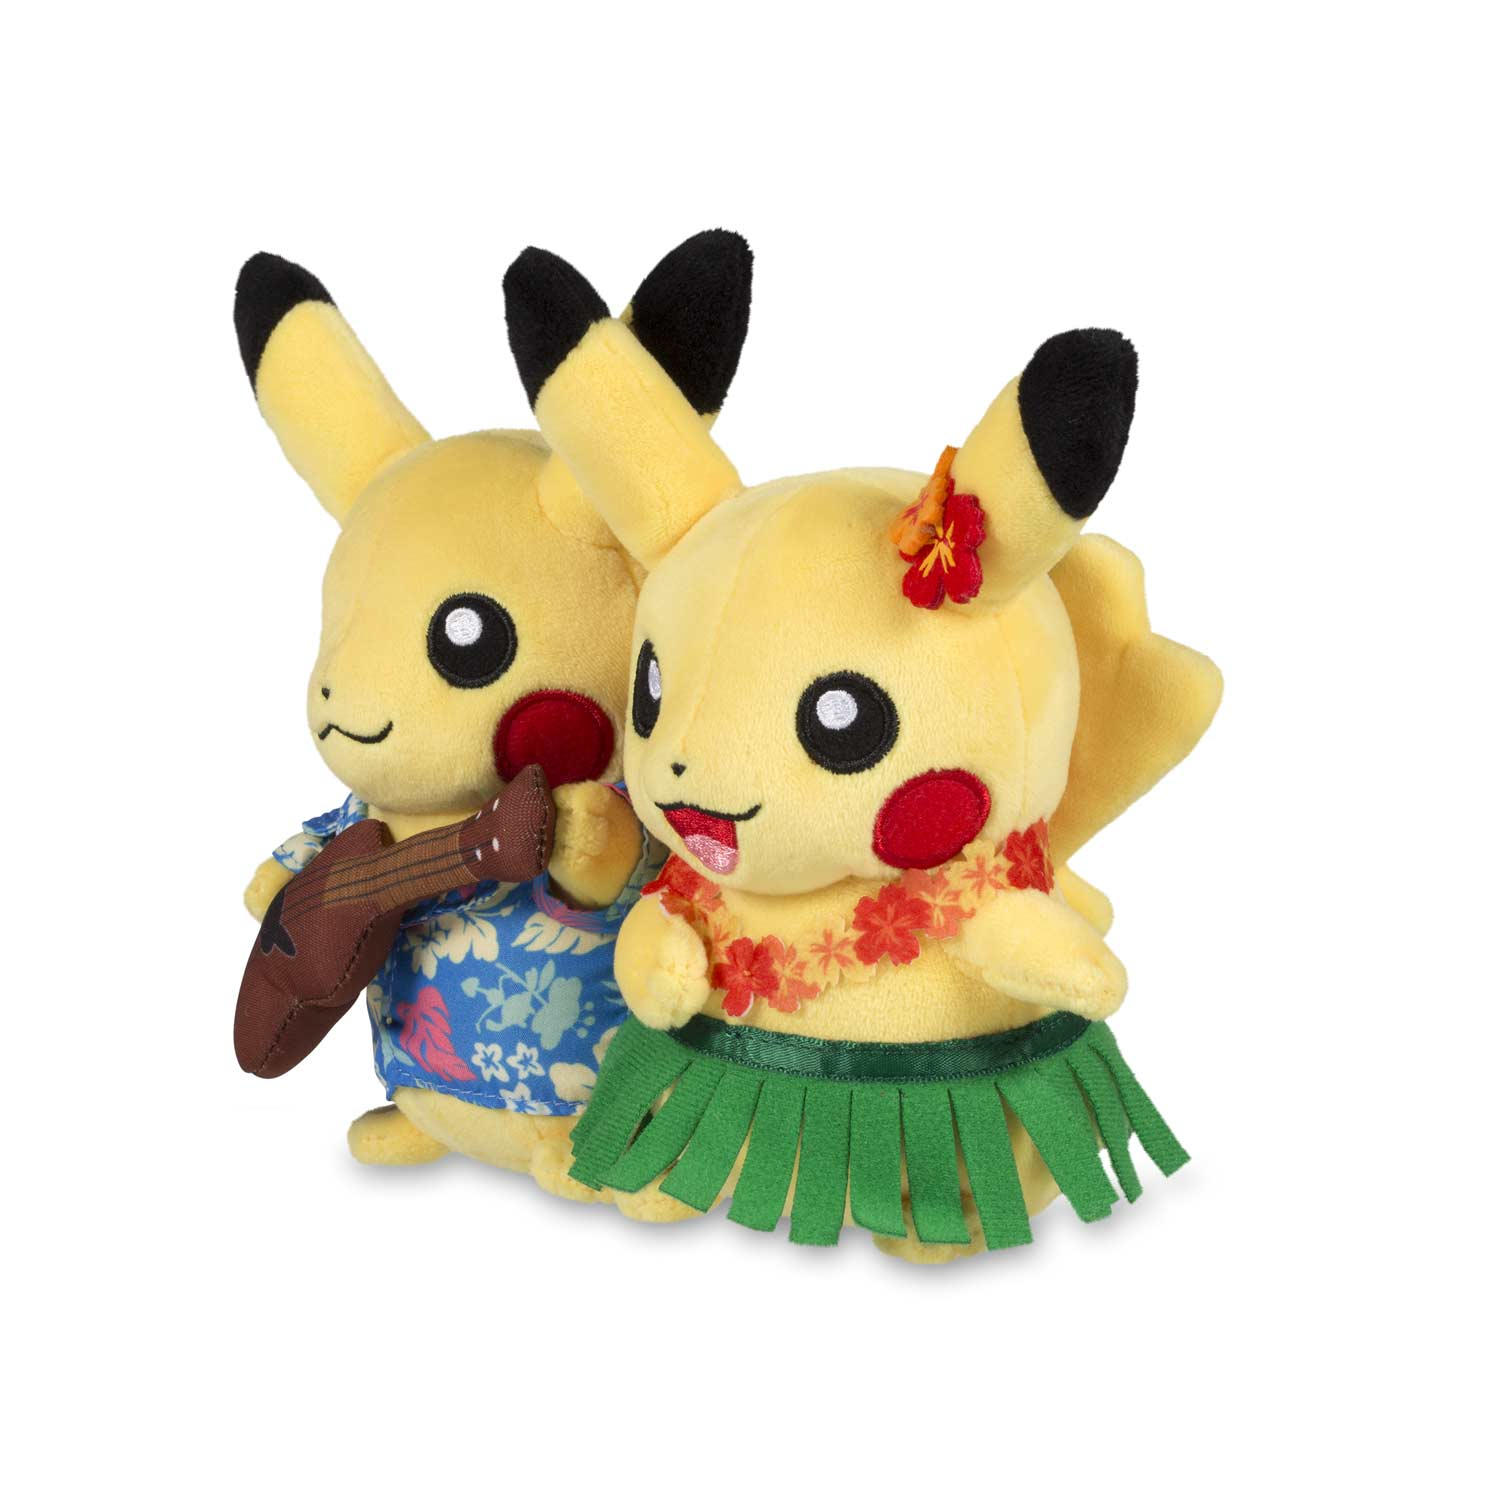 85d1826c ... Image for Paired Pikachu Celebrations: Hawaiian Pikachu Plush - 8 In.  from Pokemon Center ...